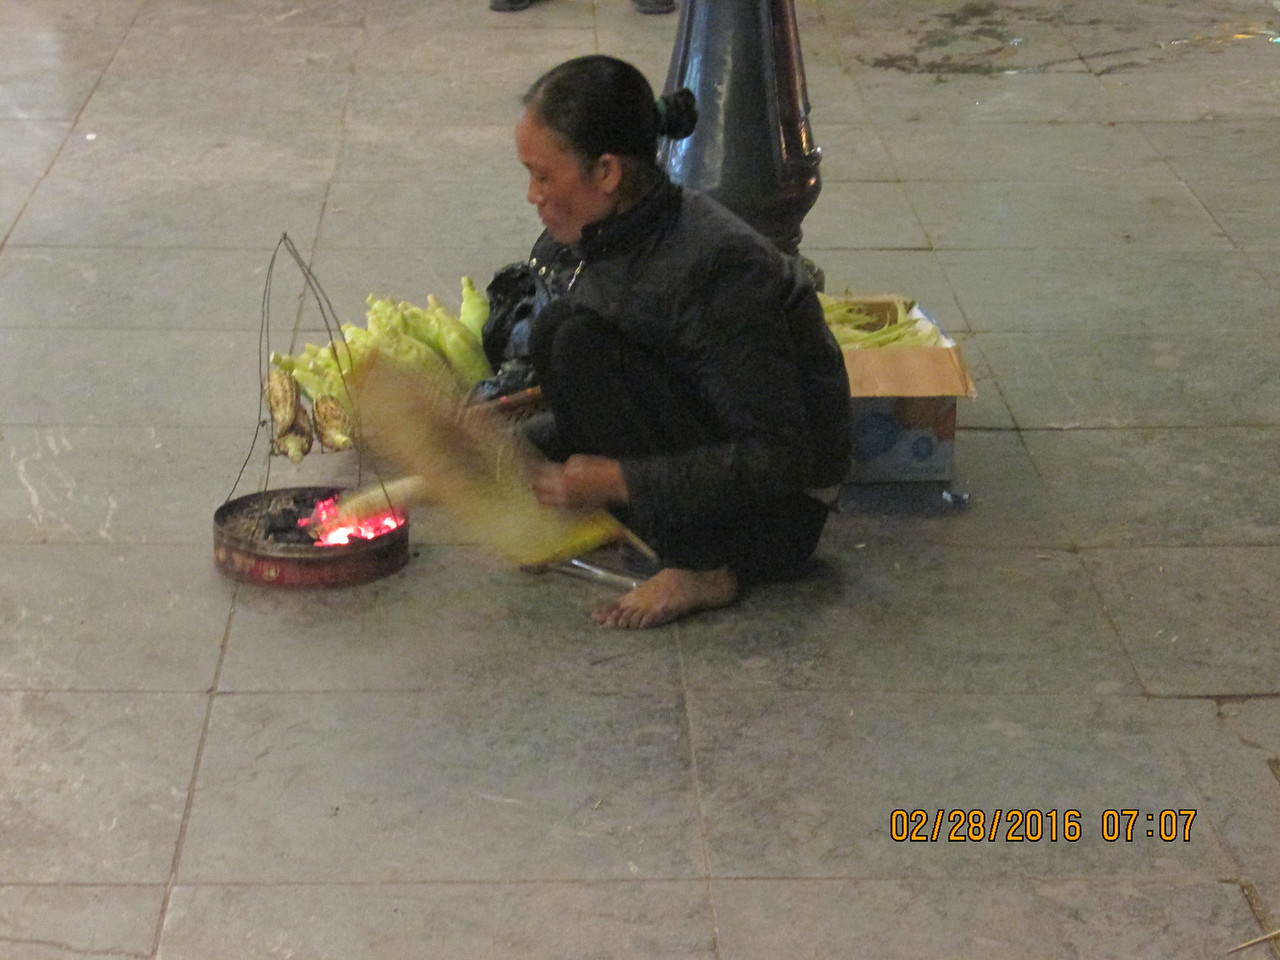 0090 - Woman Grills Corn along Hoan Kiem Lake in the Old Quarter - Hanoi Vietnam - Date Correct but Time on Pic is Wrong